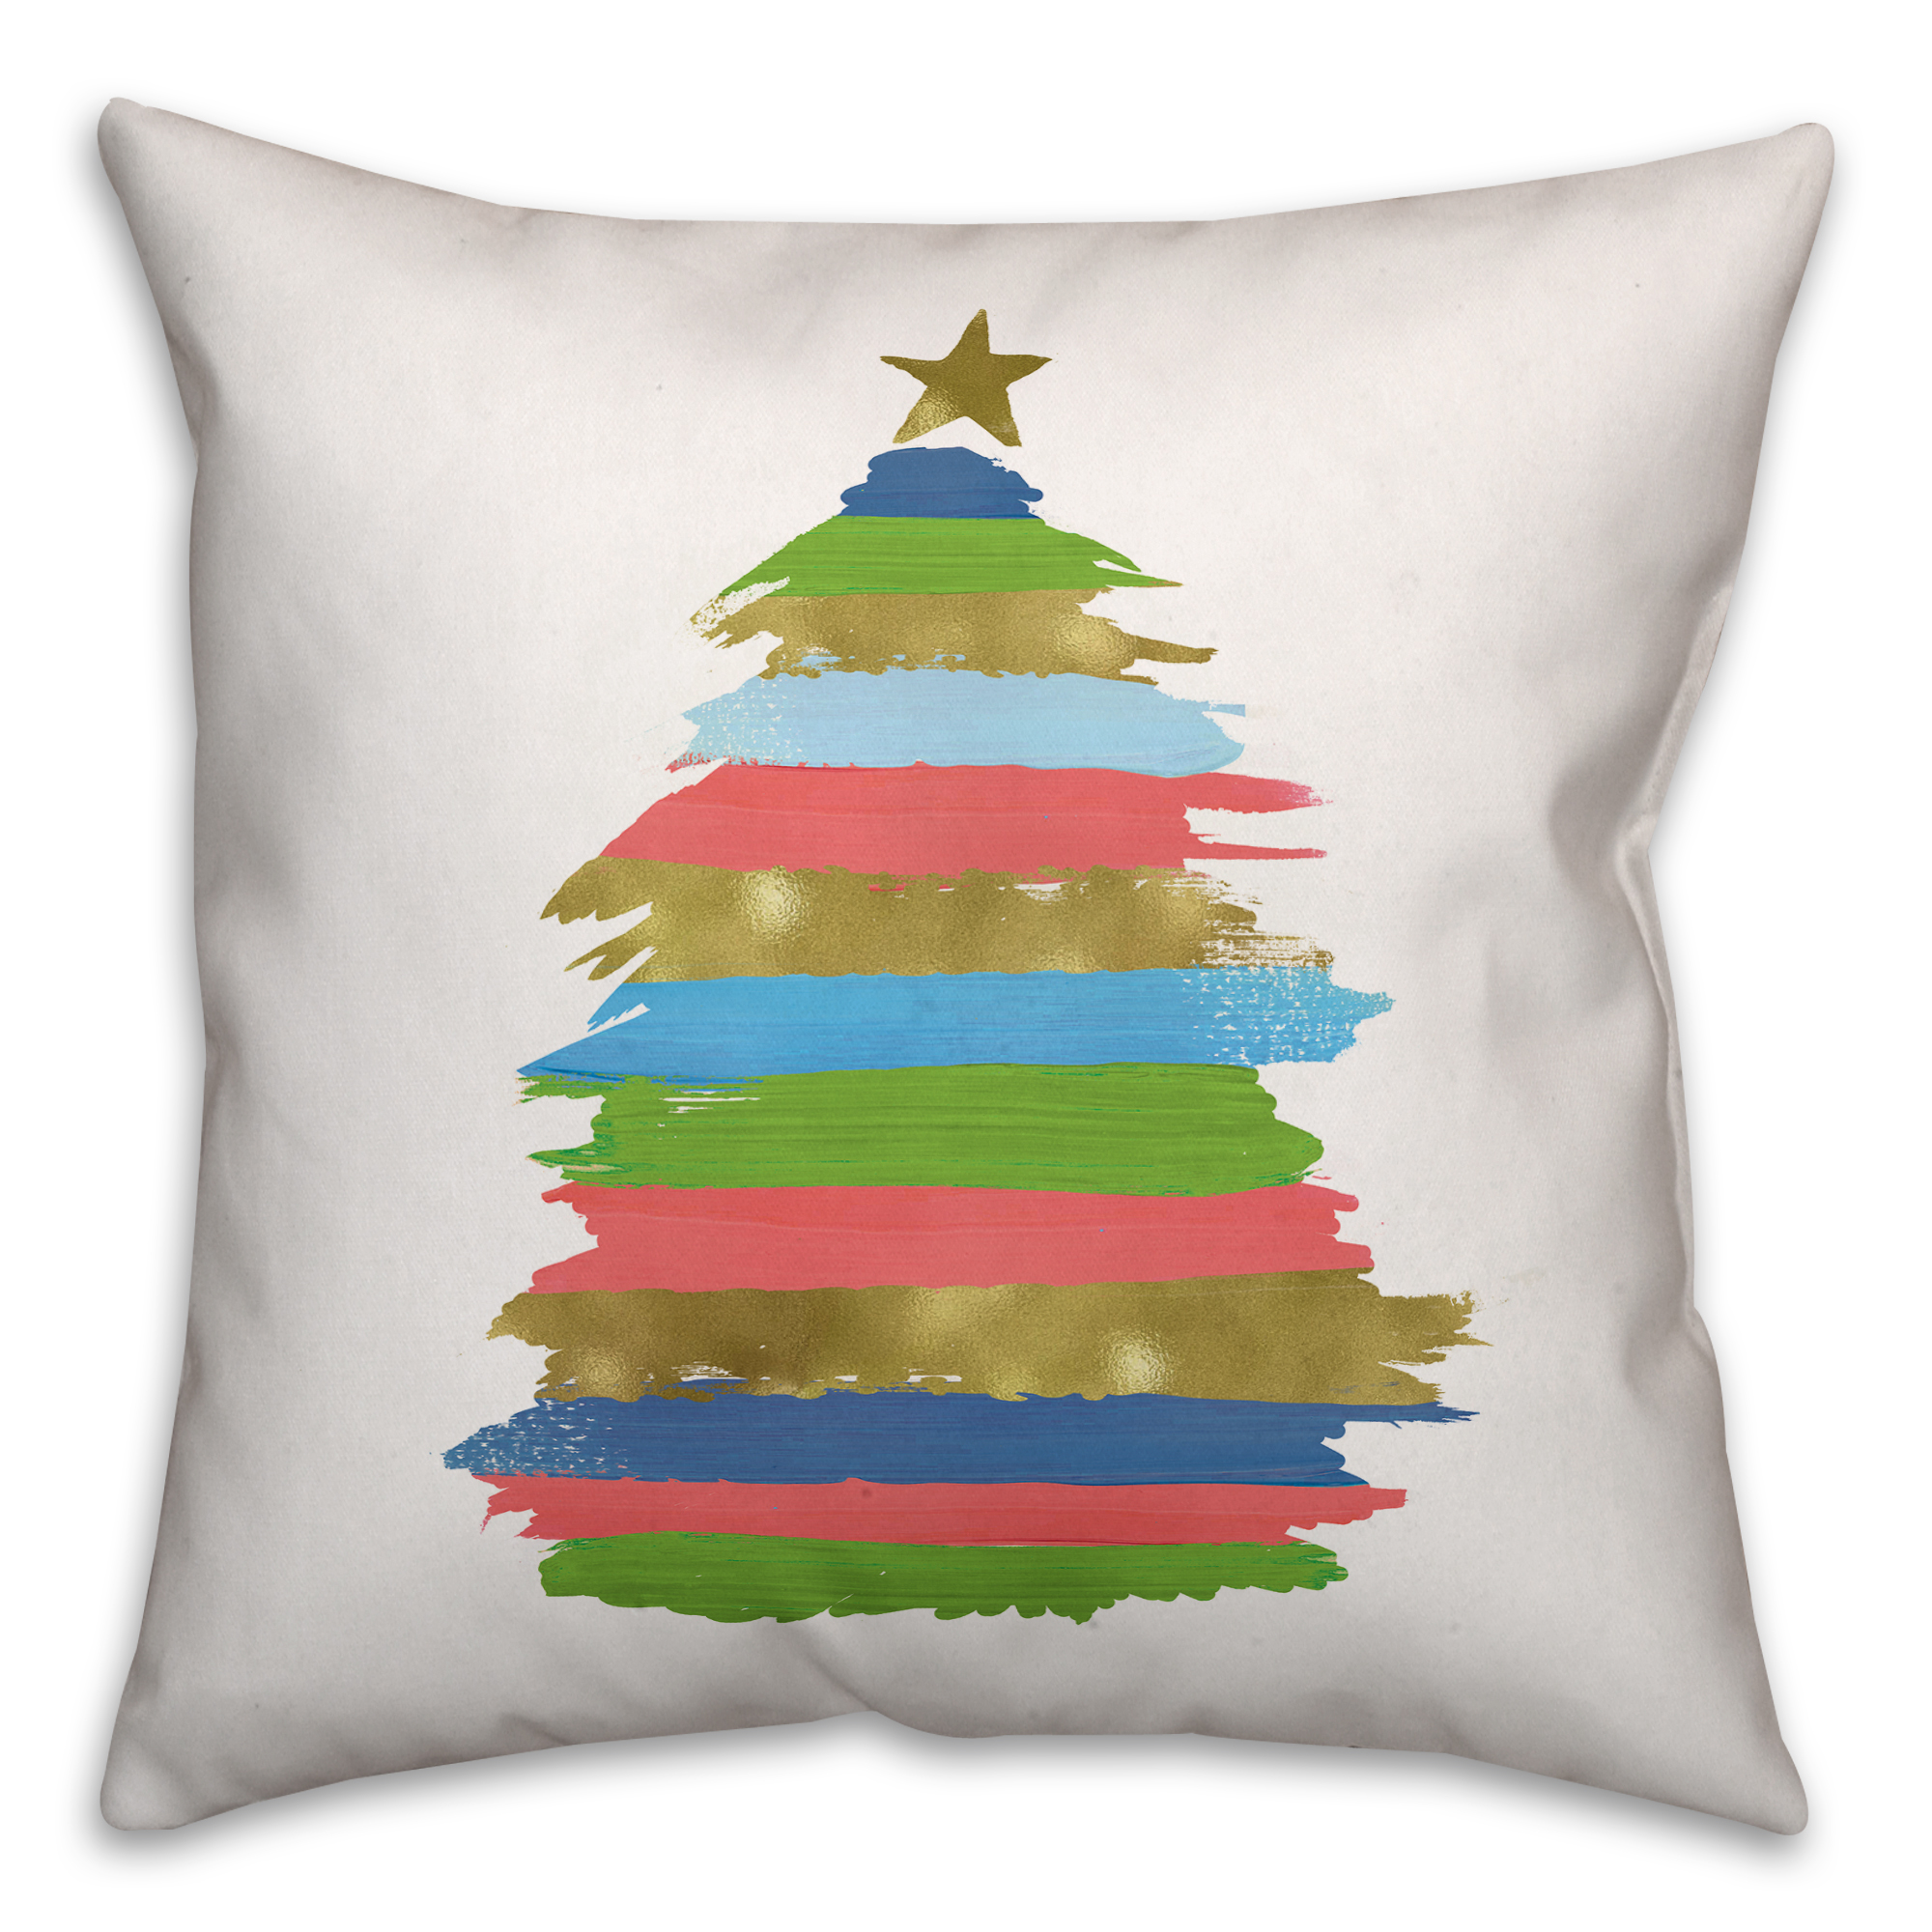 Colorful Christmas Tree 18x18 Spun Poly Pillow